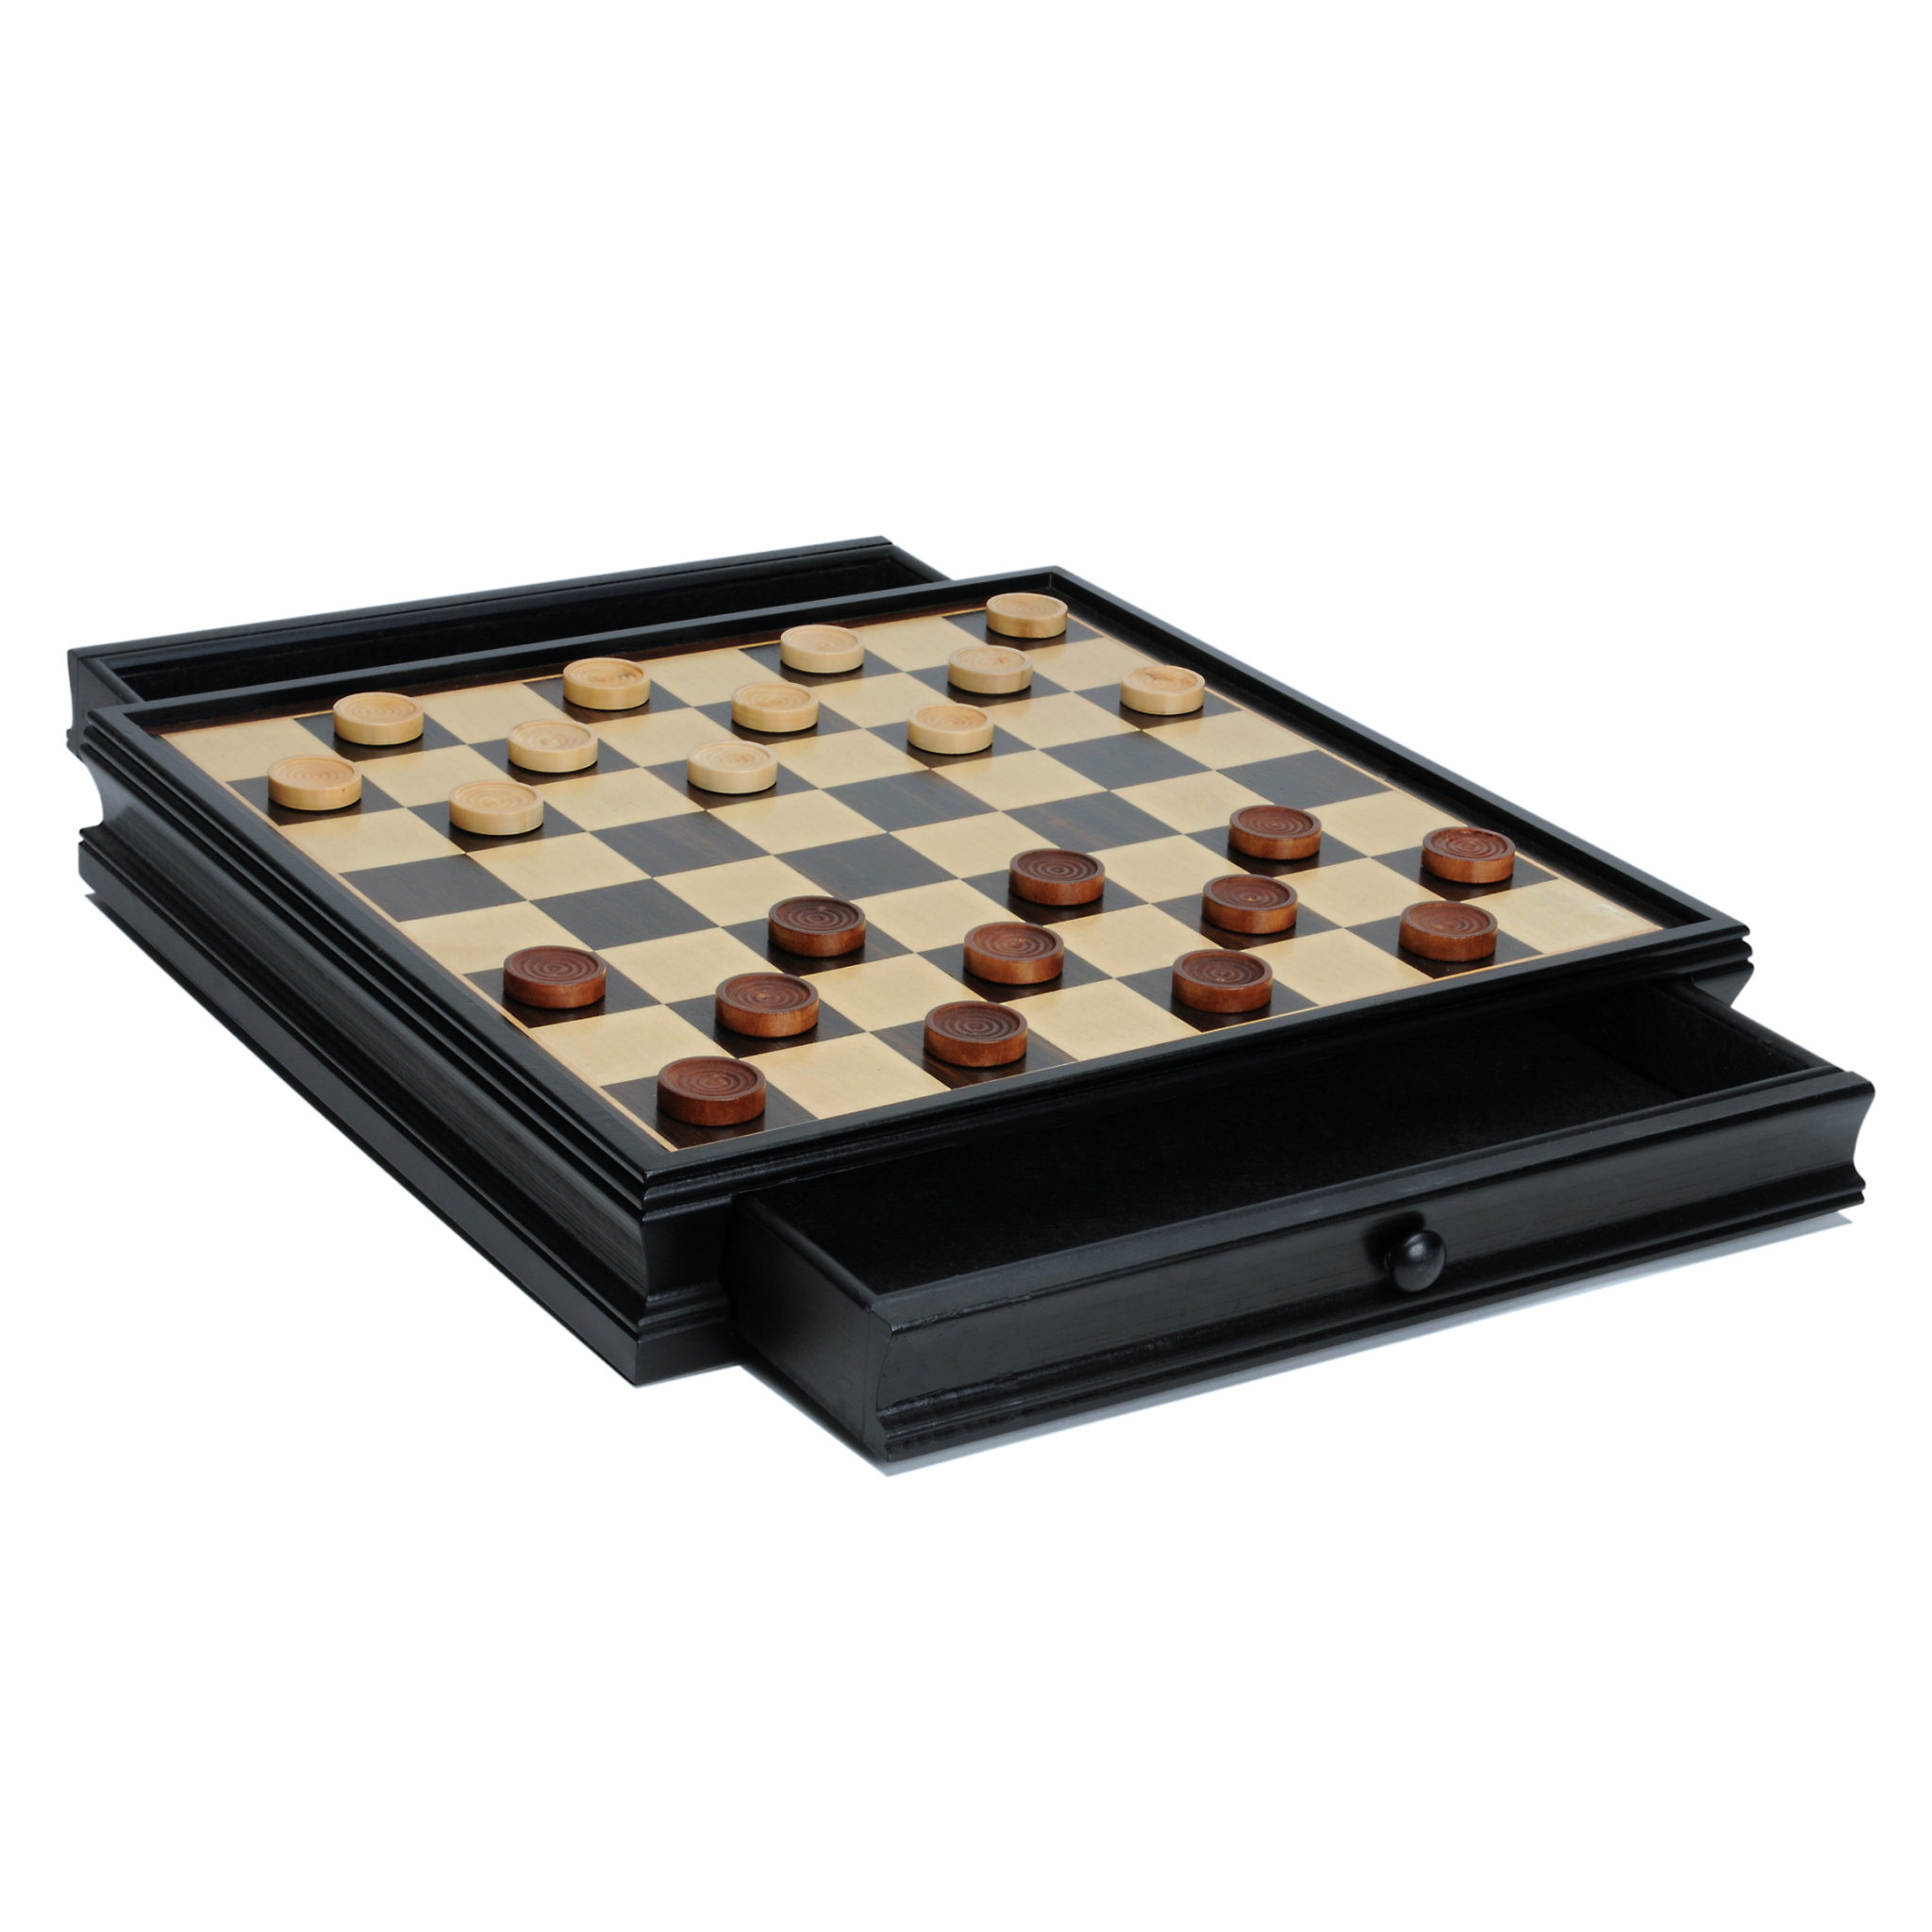 Modern Chess Amp Checkers Game Set Weighted Chessmen